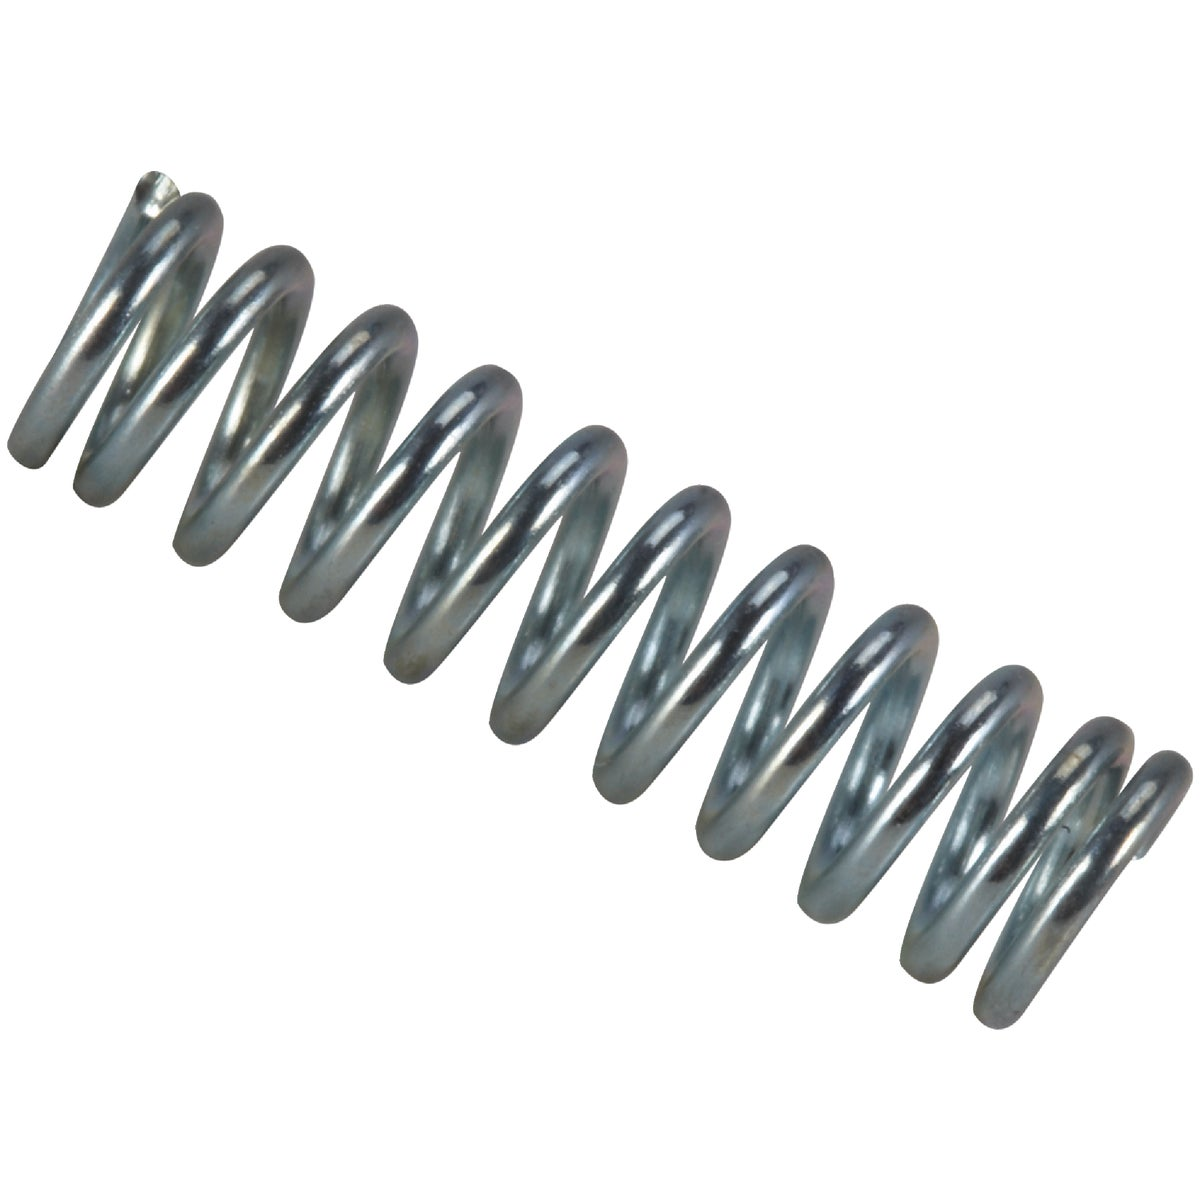 COMPRESSION SPRING - C-554 by Century Spring Corp